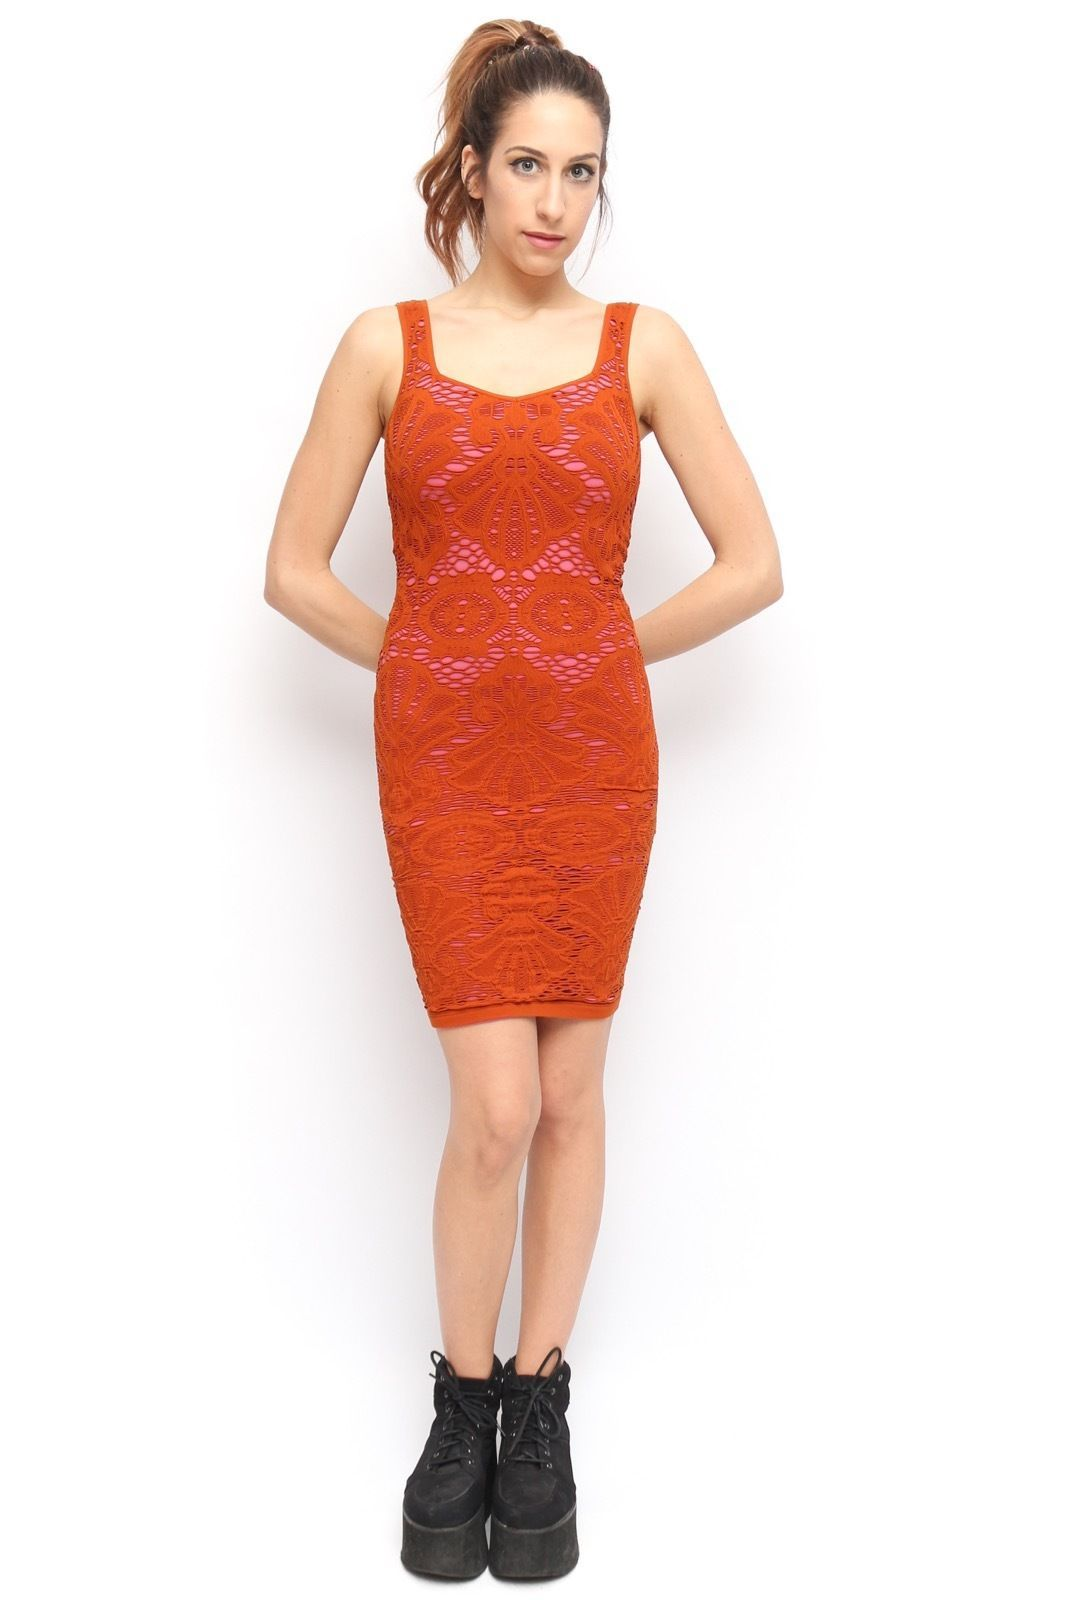 Free People Orange Pink Stretch Lace Seashell Mermaid Bodycon Dress ...